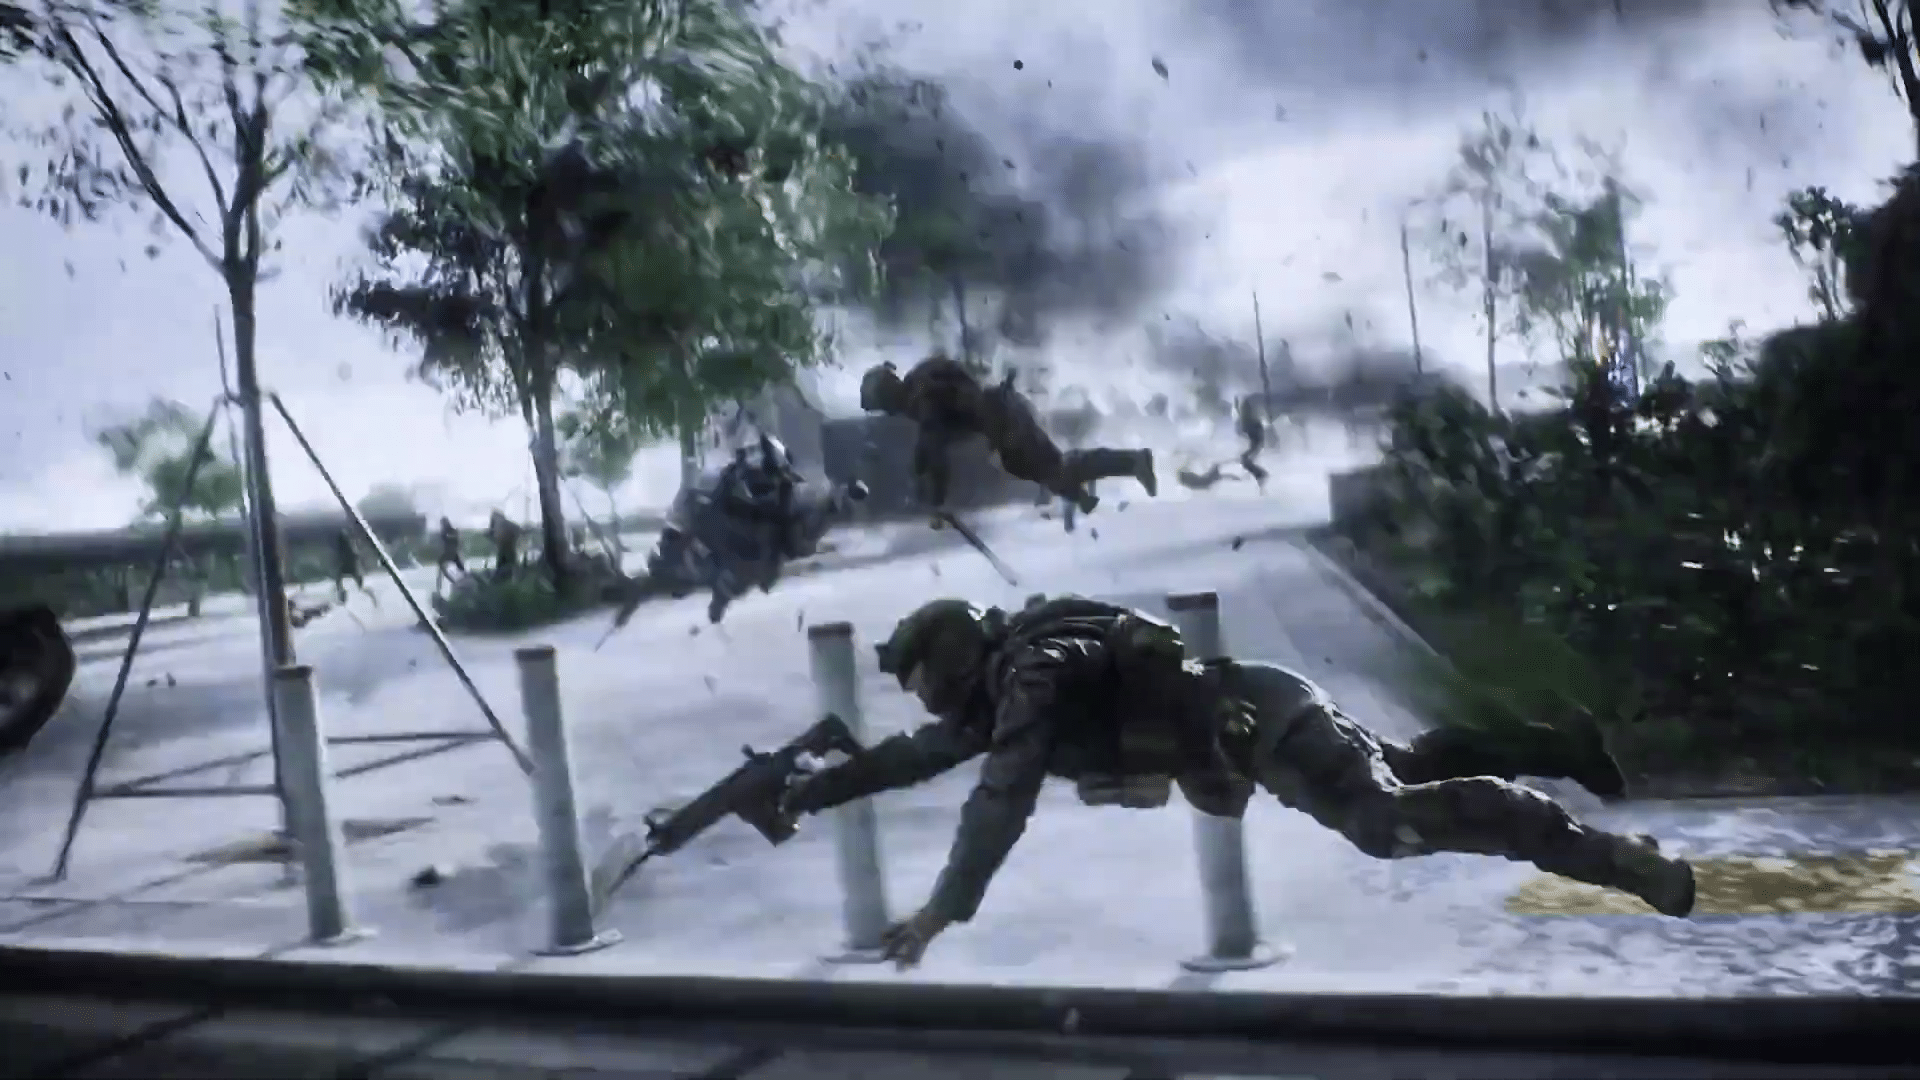 Battlefield 2042 FIFA 22 Items Spotted, More Vehicle Loadout Details Surface